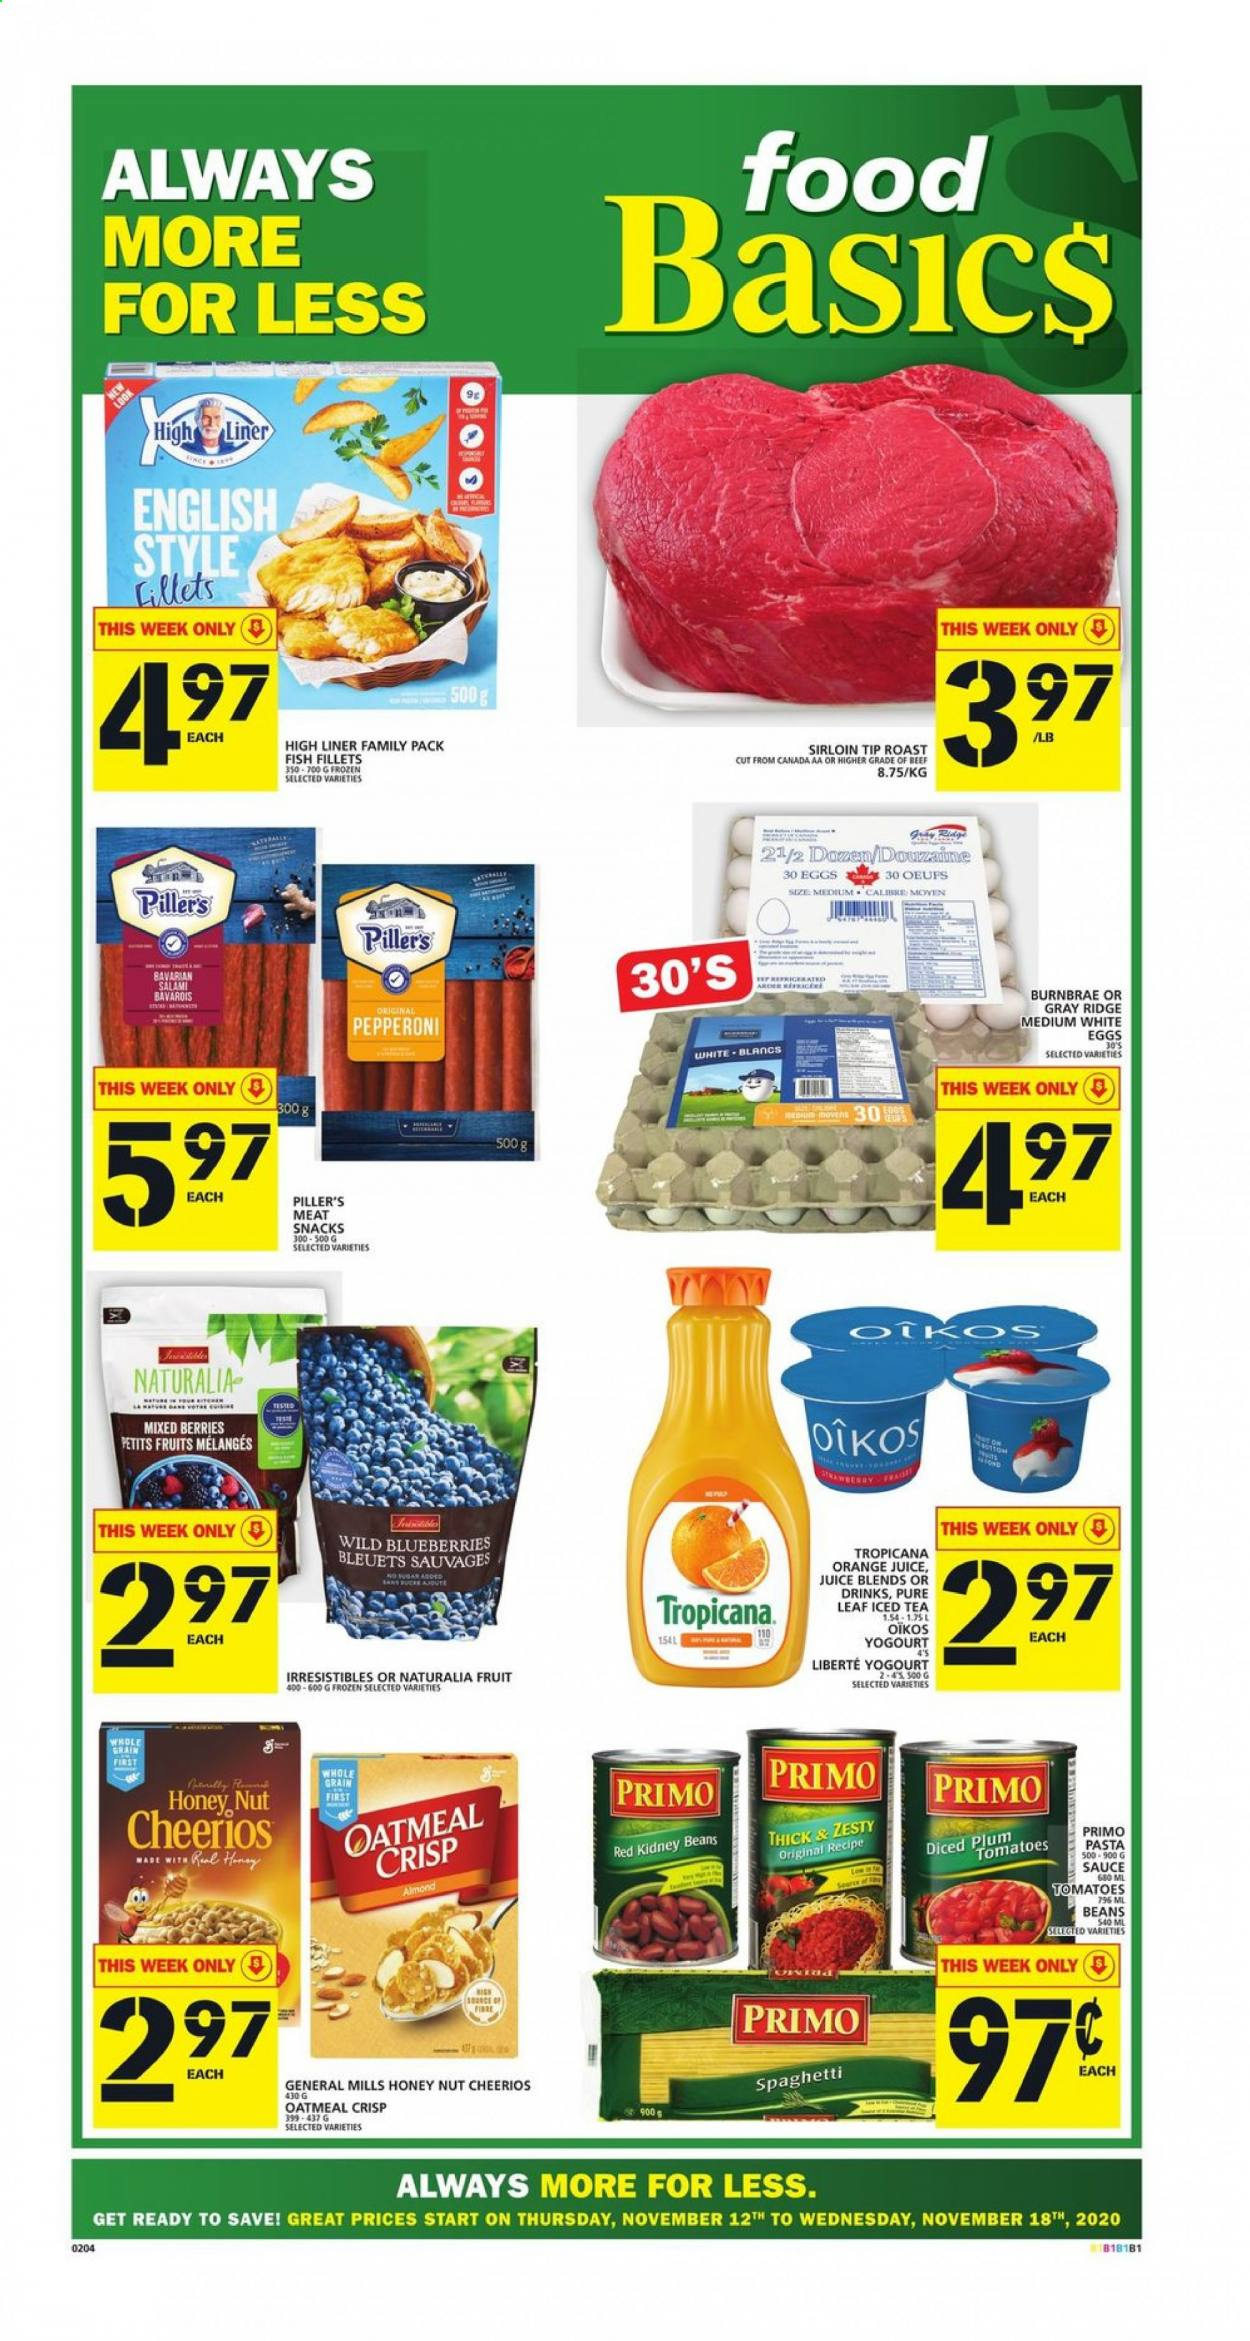 Food Basics Flyer - November 12, 2020 - November 18, 2020 - Sales products - always, beans, beef meat, blueberries, eggs, fish fillets, frozen, salami, spaghetti, tea, tomatoes, honey, kidney beans, cheerios, oatmeal, orange juice, juice, snack, iced tea, pasta, sauce, sucre, œufs, orange, tropicana, snacks, egg, fruits, family pack, meat, fish, roast, tomato. Page 1.